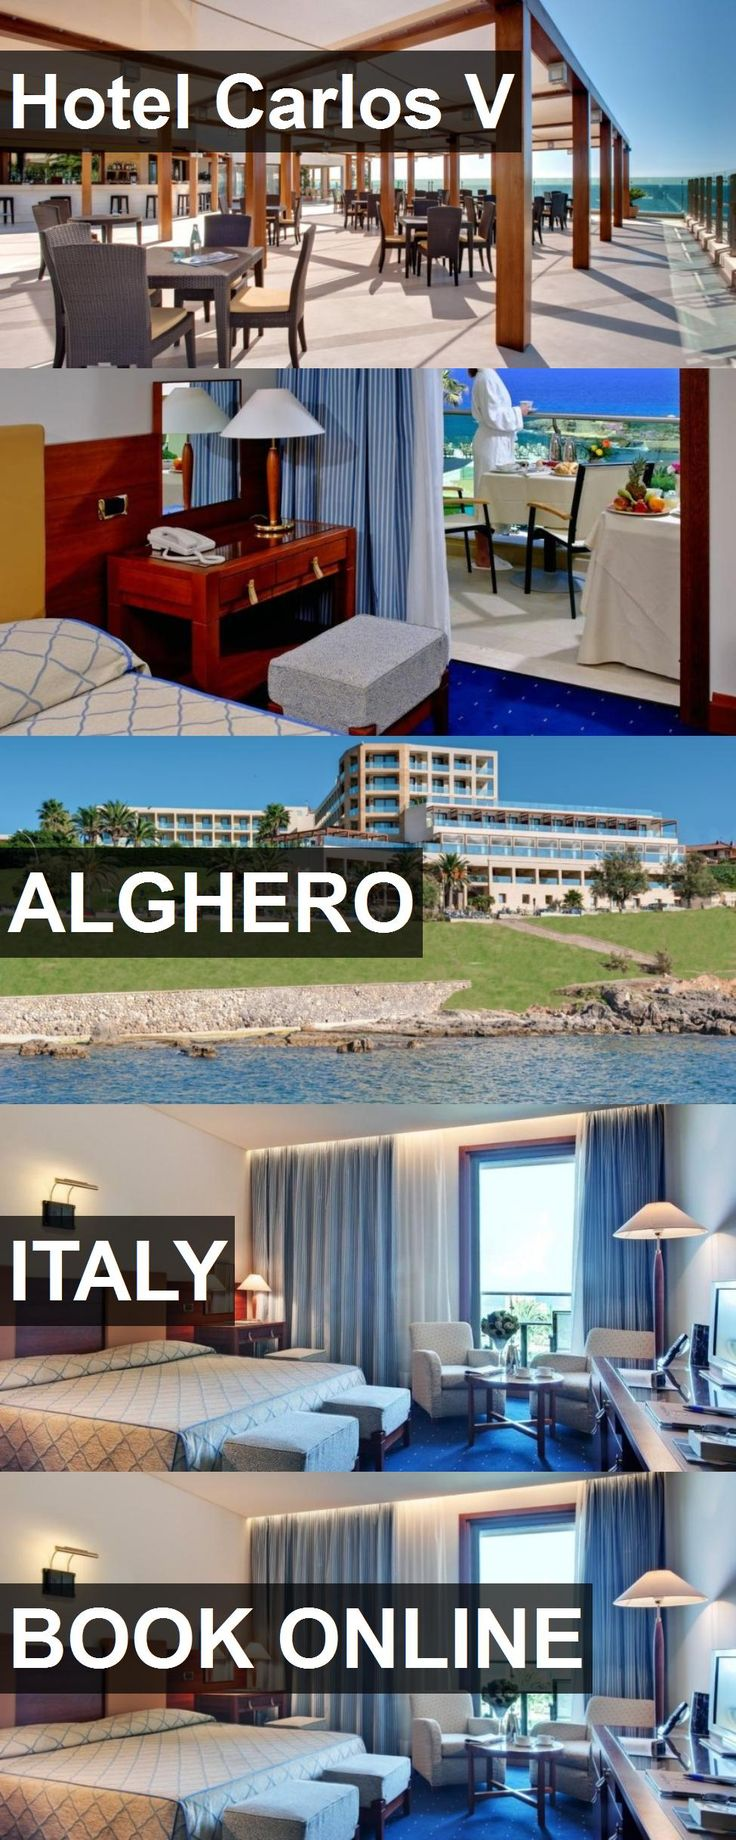 Hotel Hotel Carlos V in Alghero, Italy. For more information, photos, reviews and best prices please follow the link. #Italy #Alghero #HotelCarlosV #hotel #travel #vacation